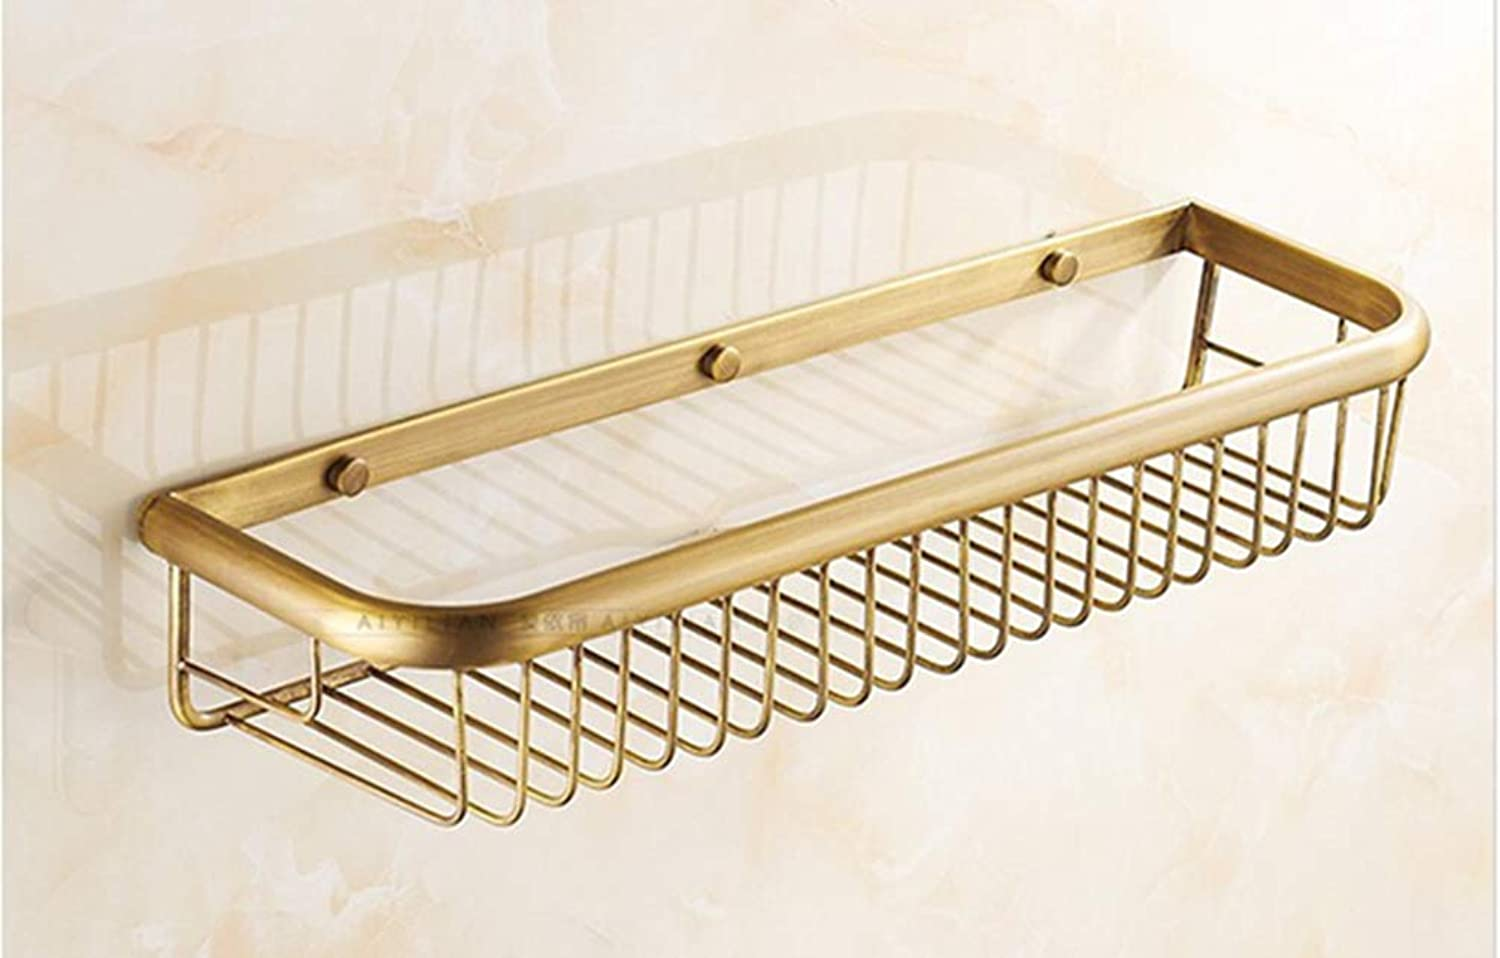 LUDSUY Bathroom Accessories Antique Brass 45Cm Bathroom Single-Tier Bathroom Storage Rack Wall Mount Bathroom Shelf